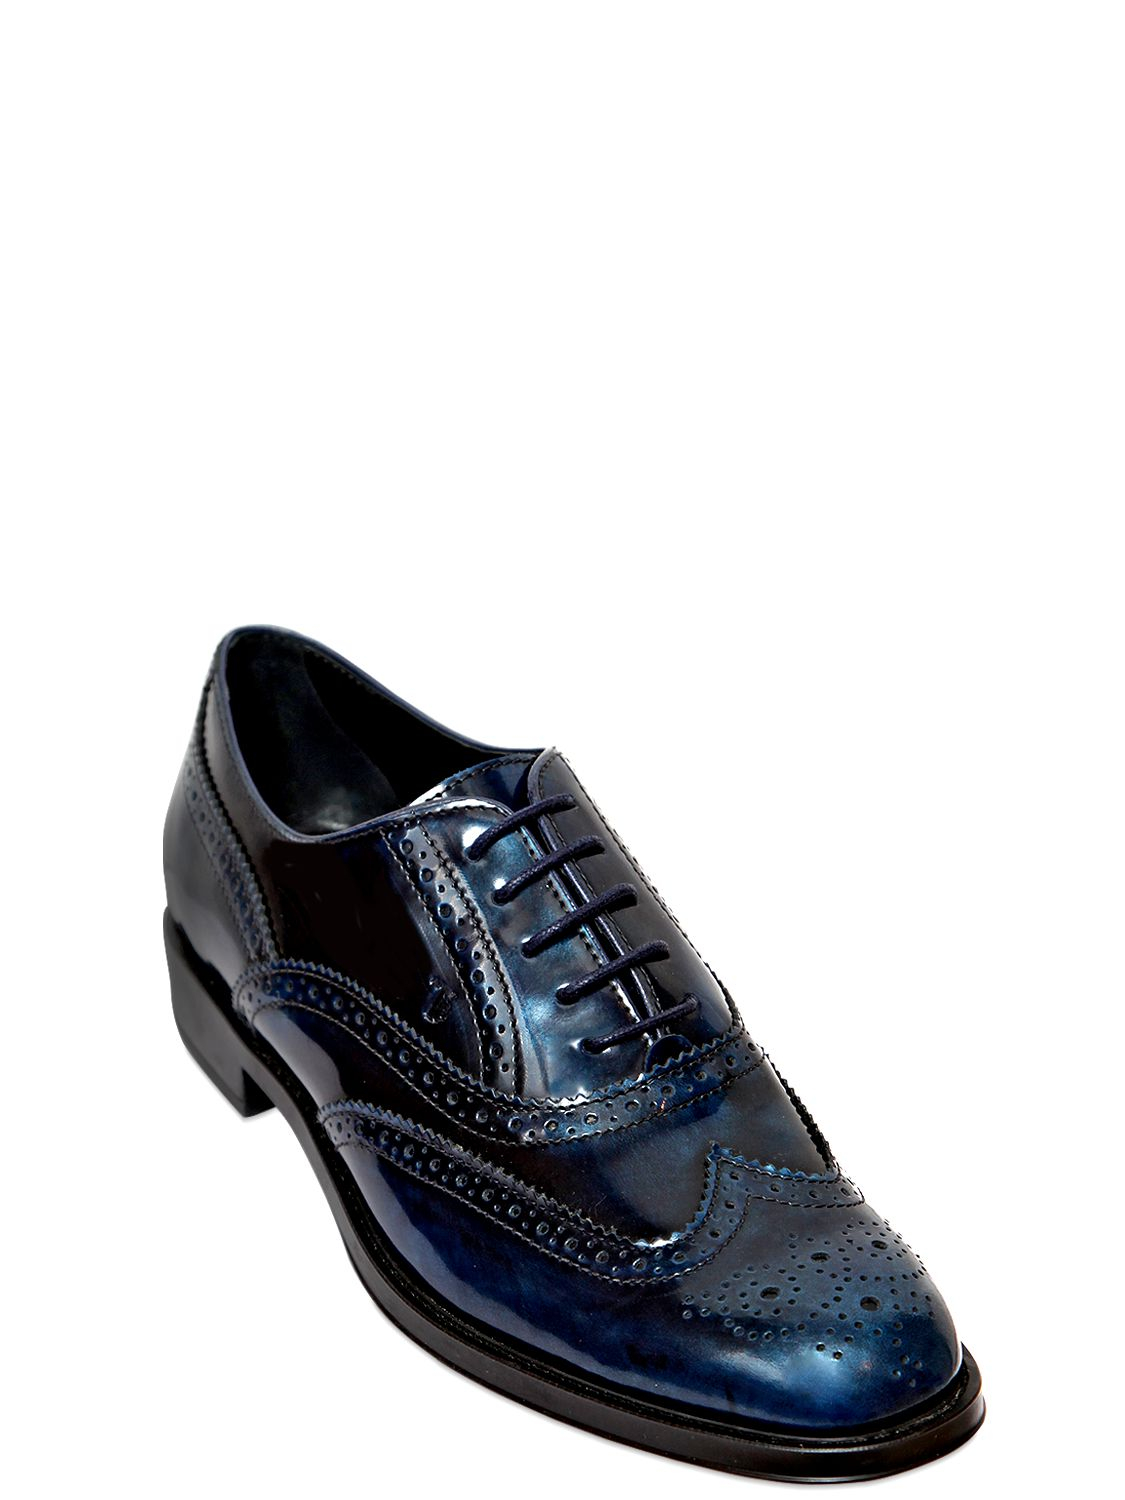 Rubber Rings For Men >> Tod's 25Mm Brushed Leather Oxford Shoes in Blue for Men | Lyst